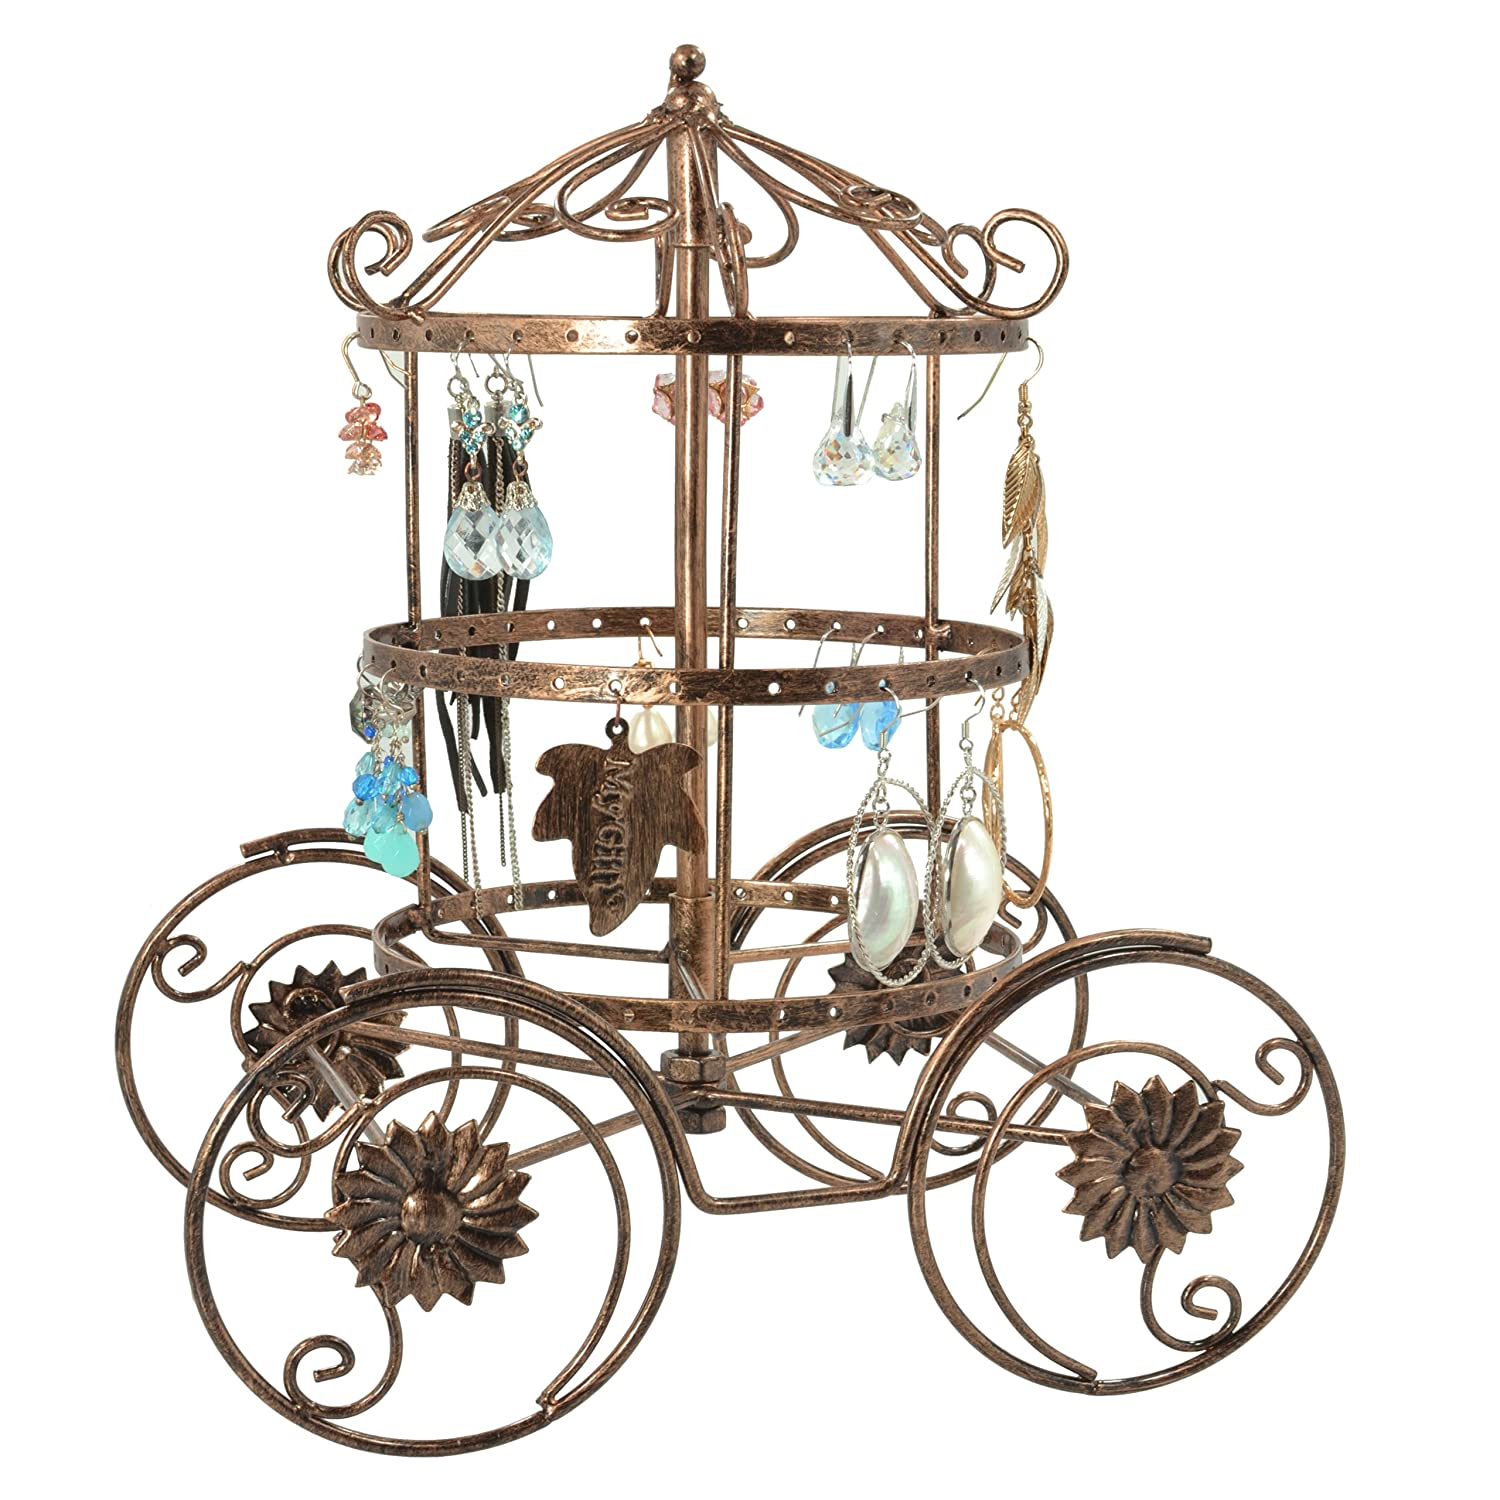 Cinderella Rotating Carriage Jewelry Storage / Earring Organizer / Bracelet Necklace Hanger Display Stand MyGift AX-AY-ABHI-71600